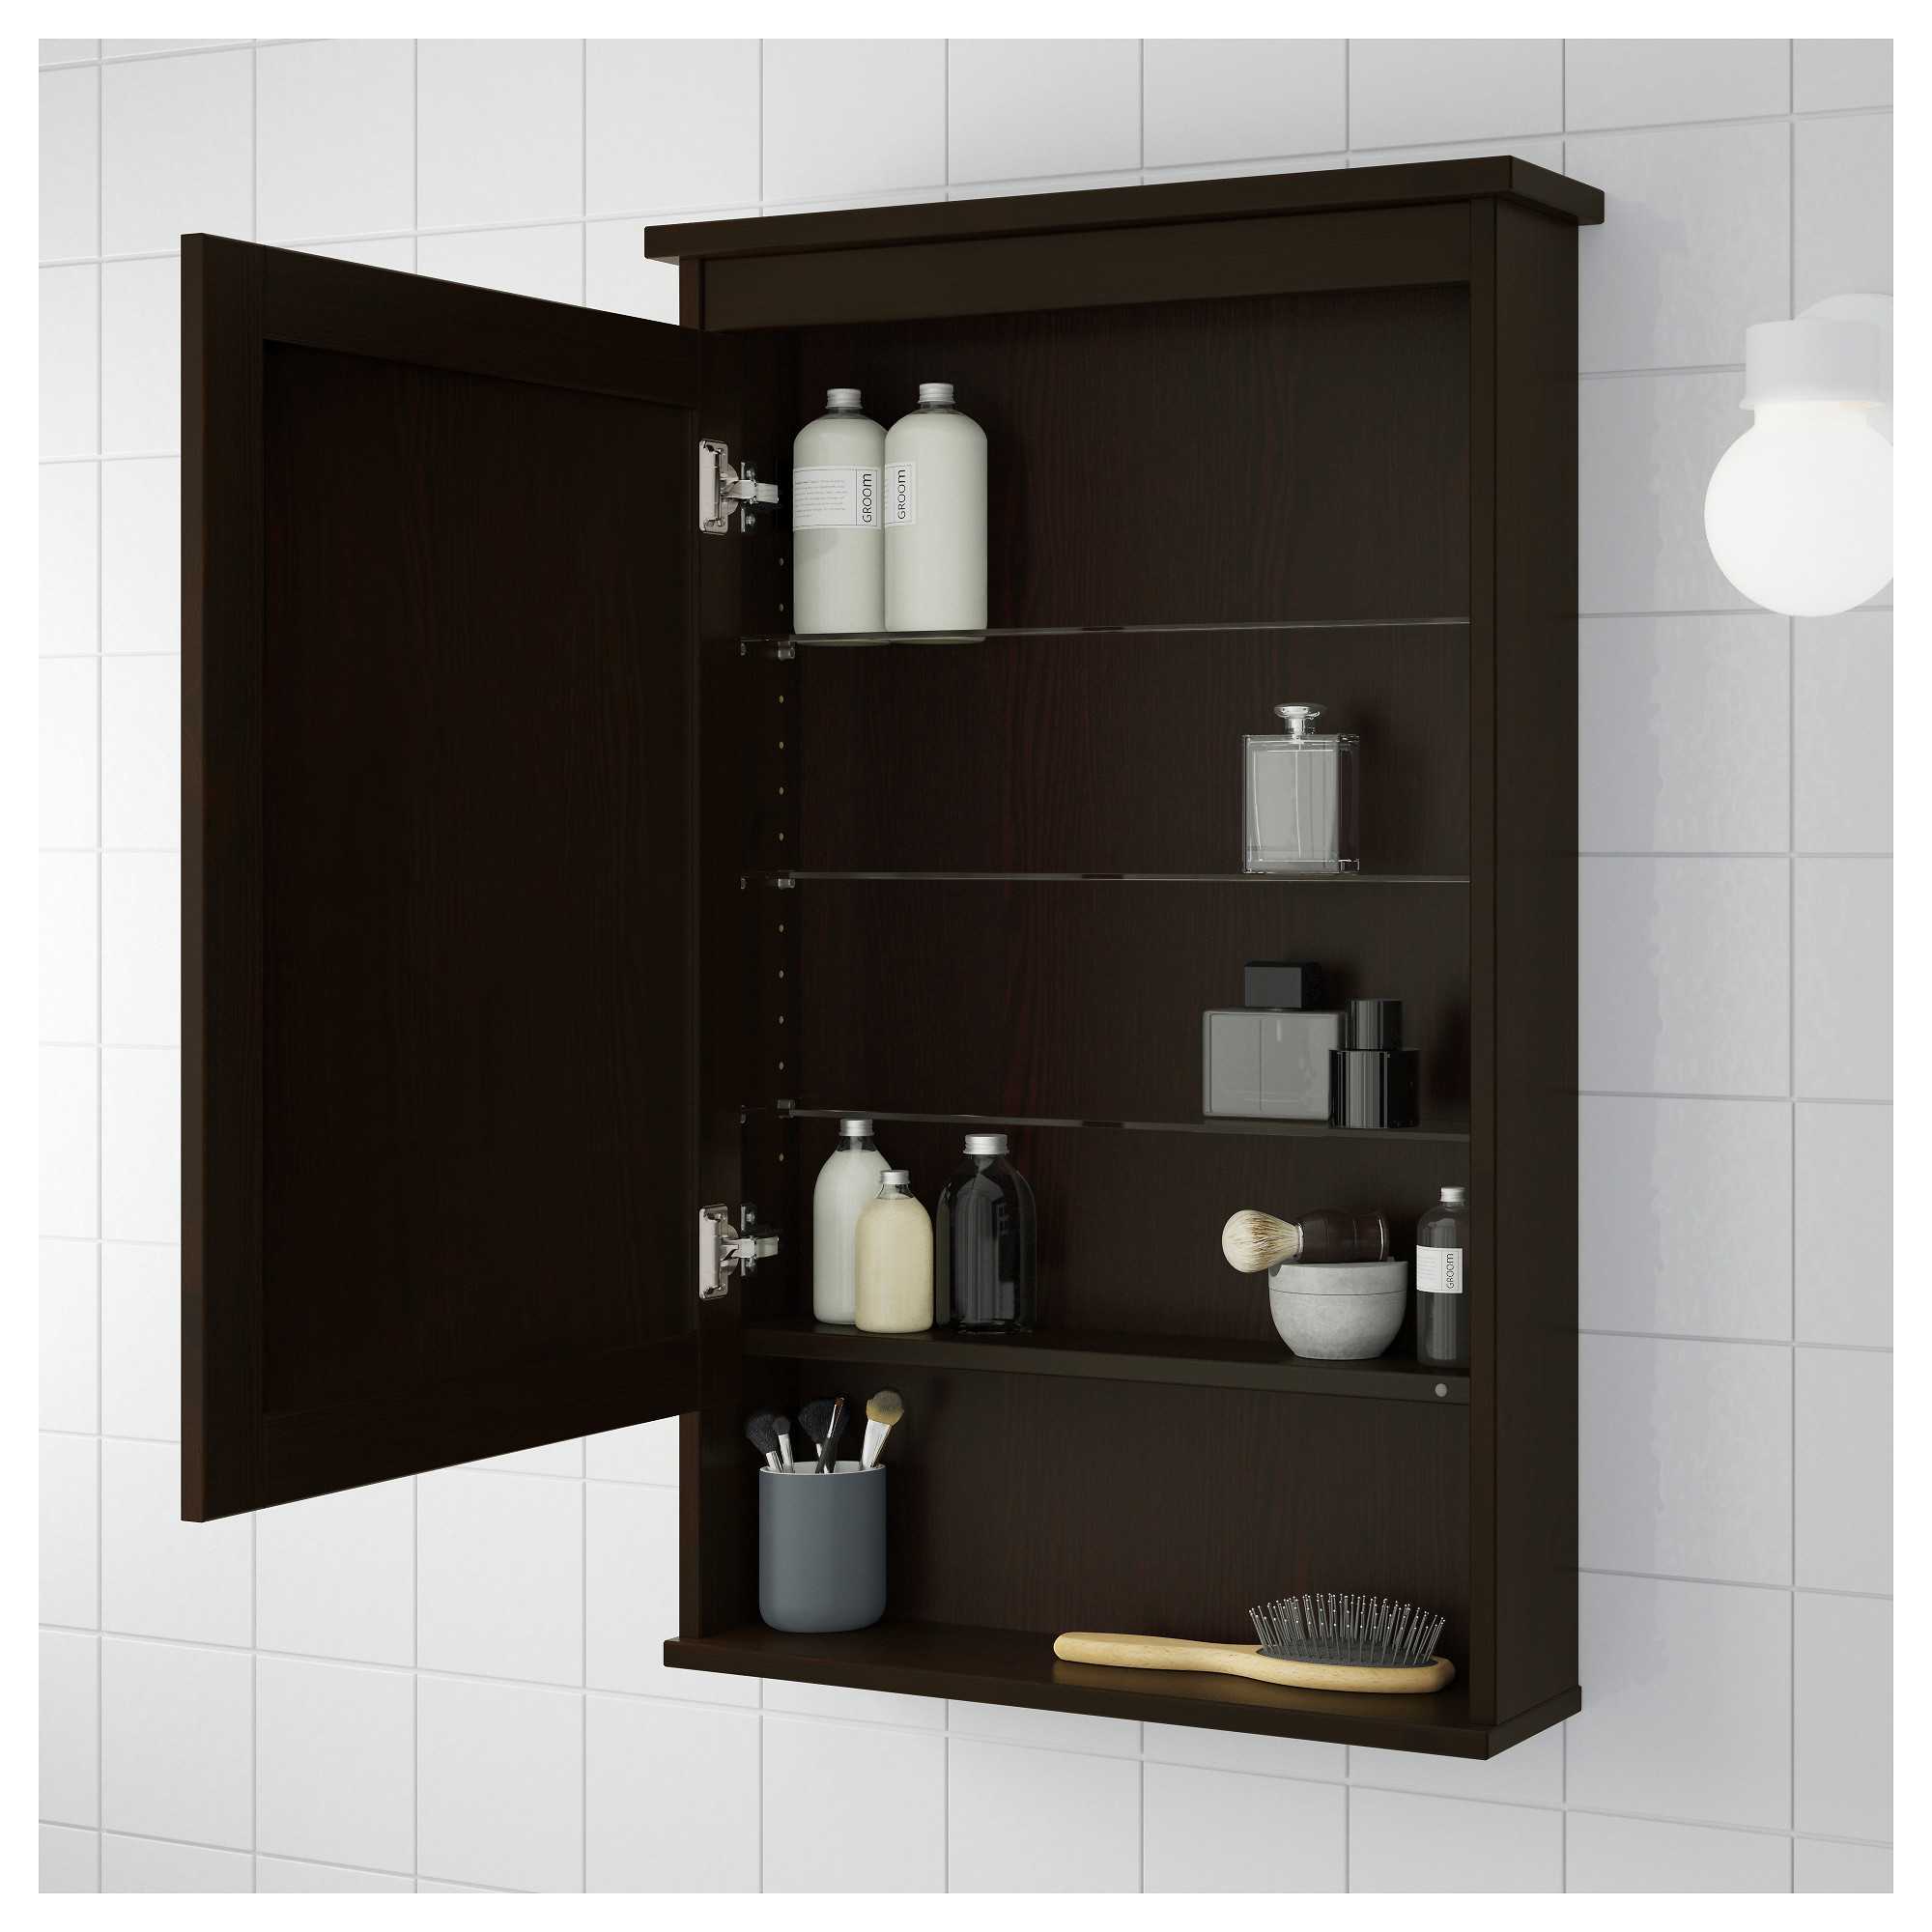 Bathroom mirror cabinets ikea - Bathroom Mirror Cabinets Ikea 23